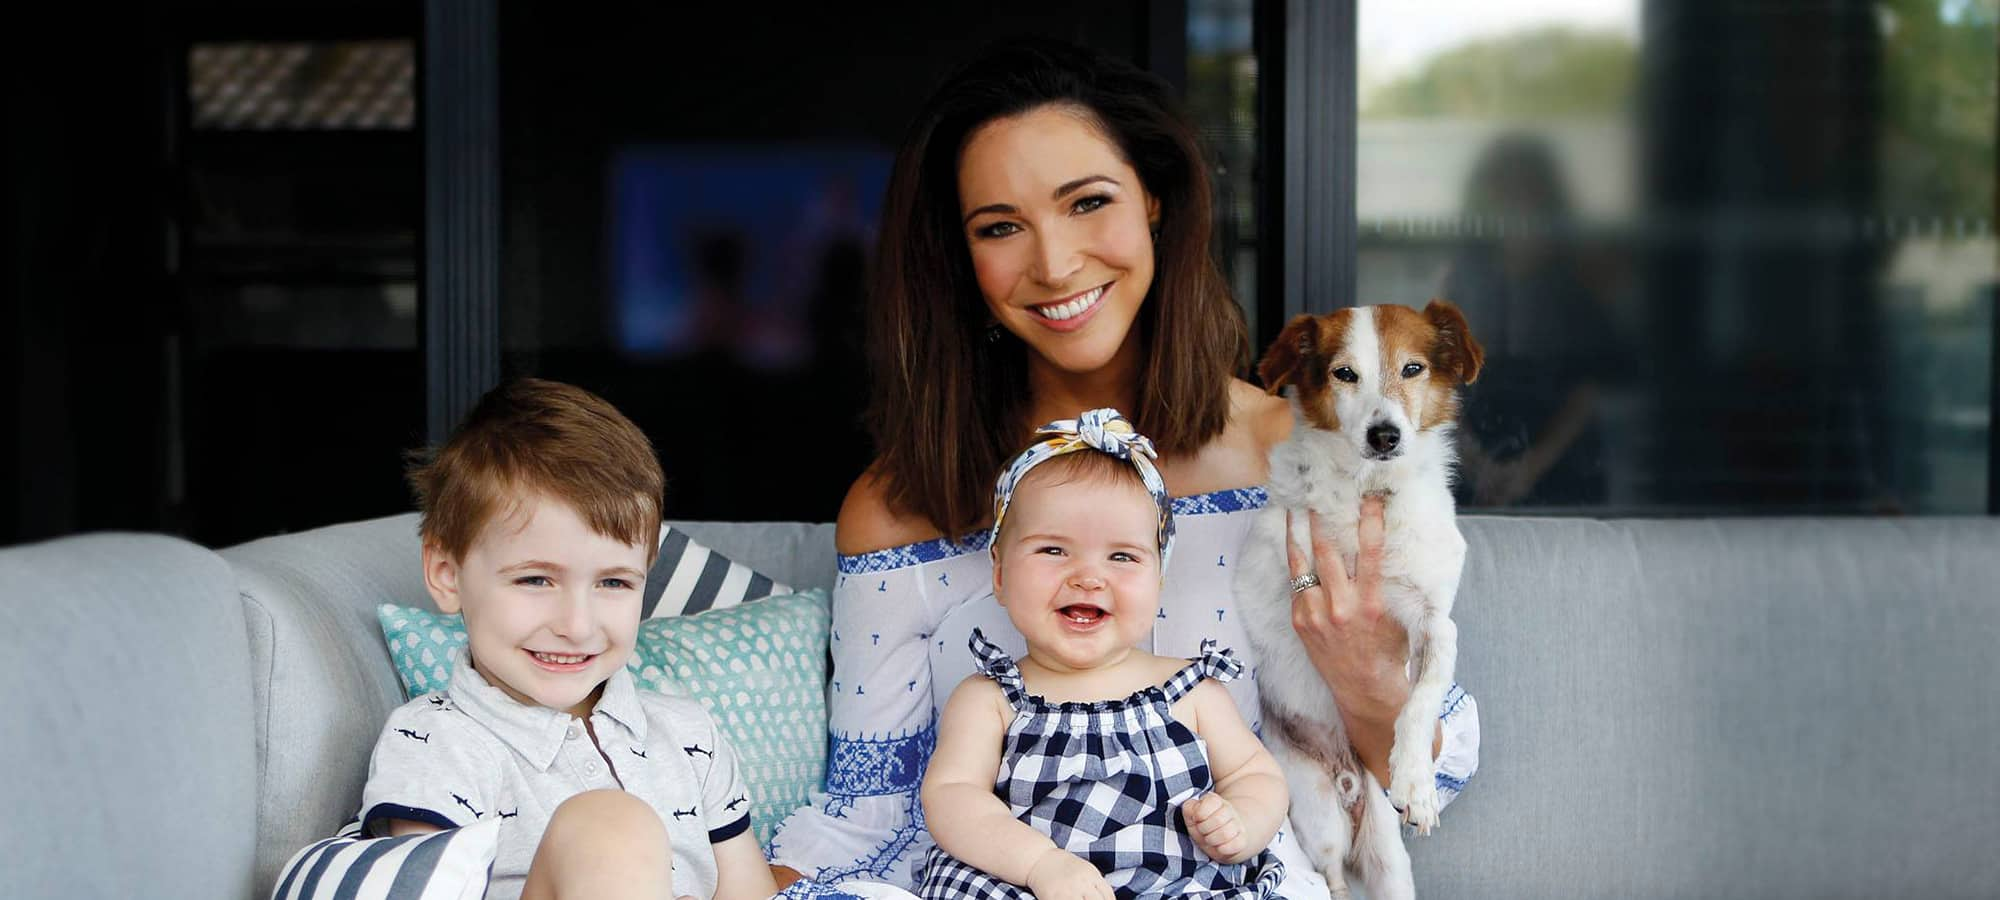 Olympic Athlete Giaan Rooney Shares Her Postpartum Journey